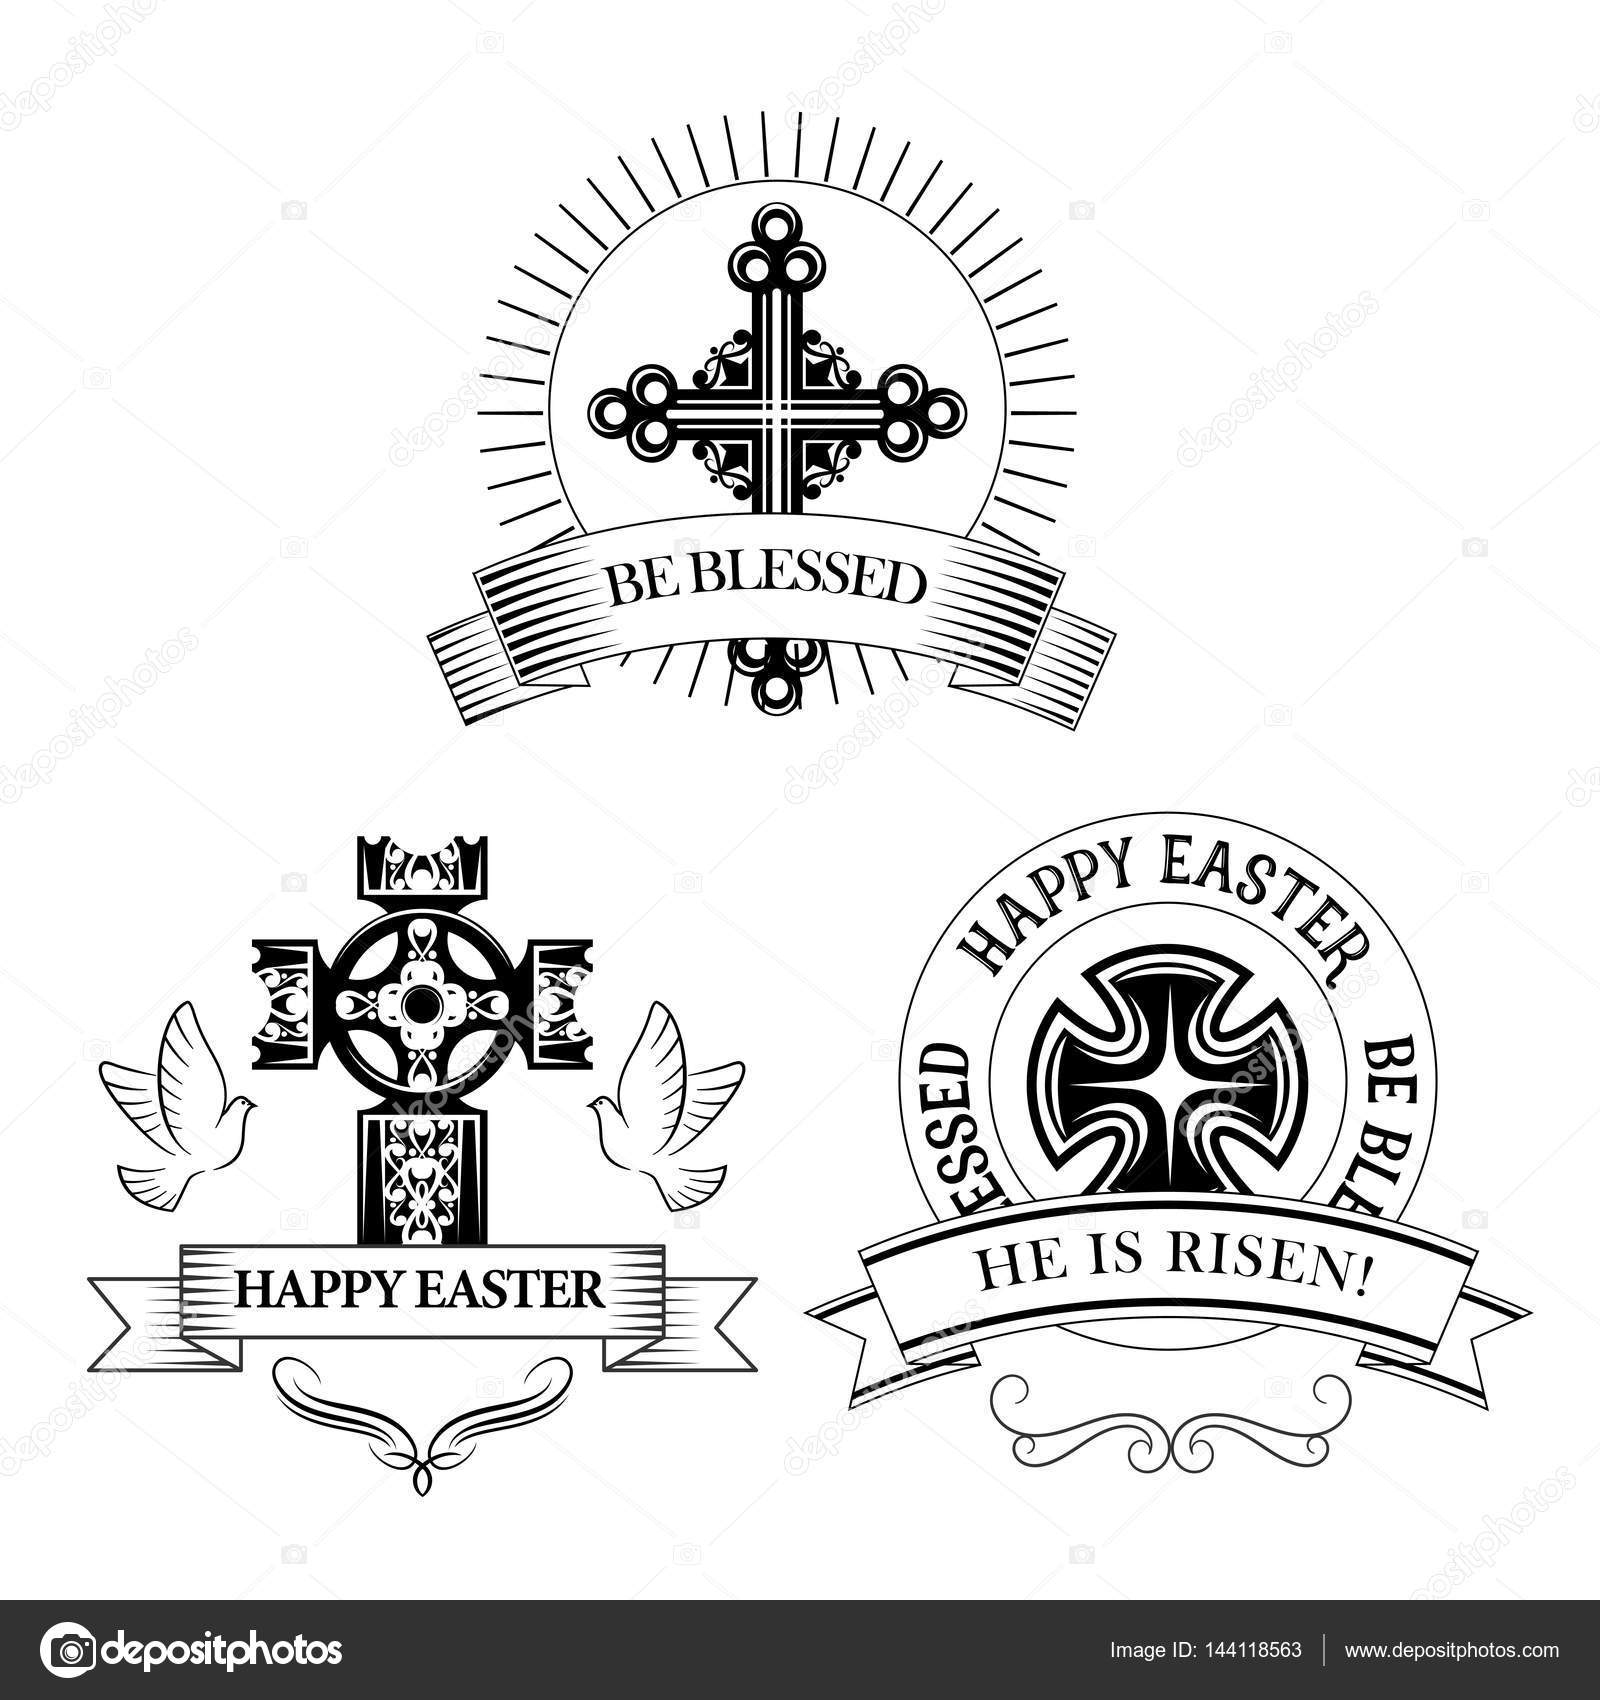 Easter cross vector symbols for paschal greeting stock vector easter symbols of cross and paschal he is risen text be blessed for resurrection sunday greeting card design vector icons of christian catholic or buycottarizona Images